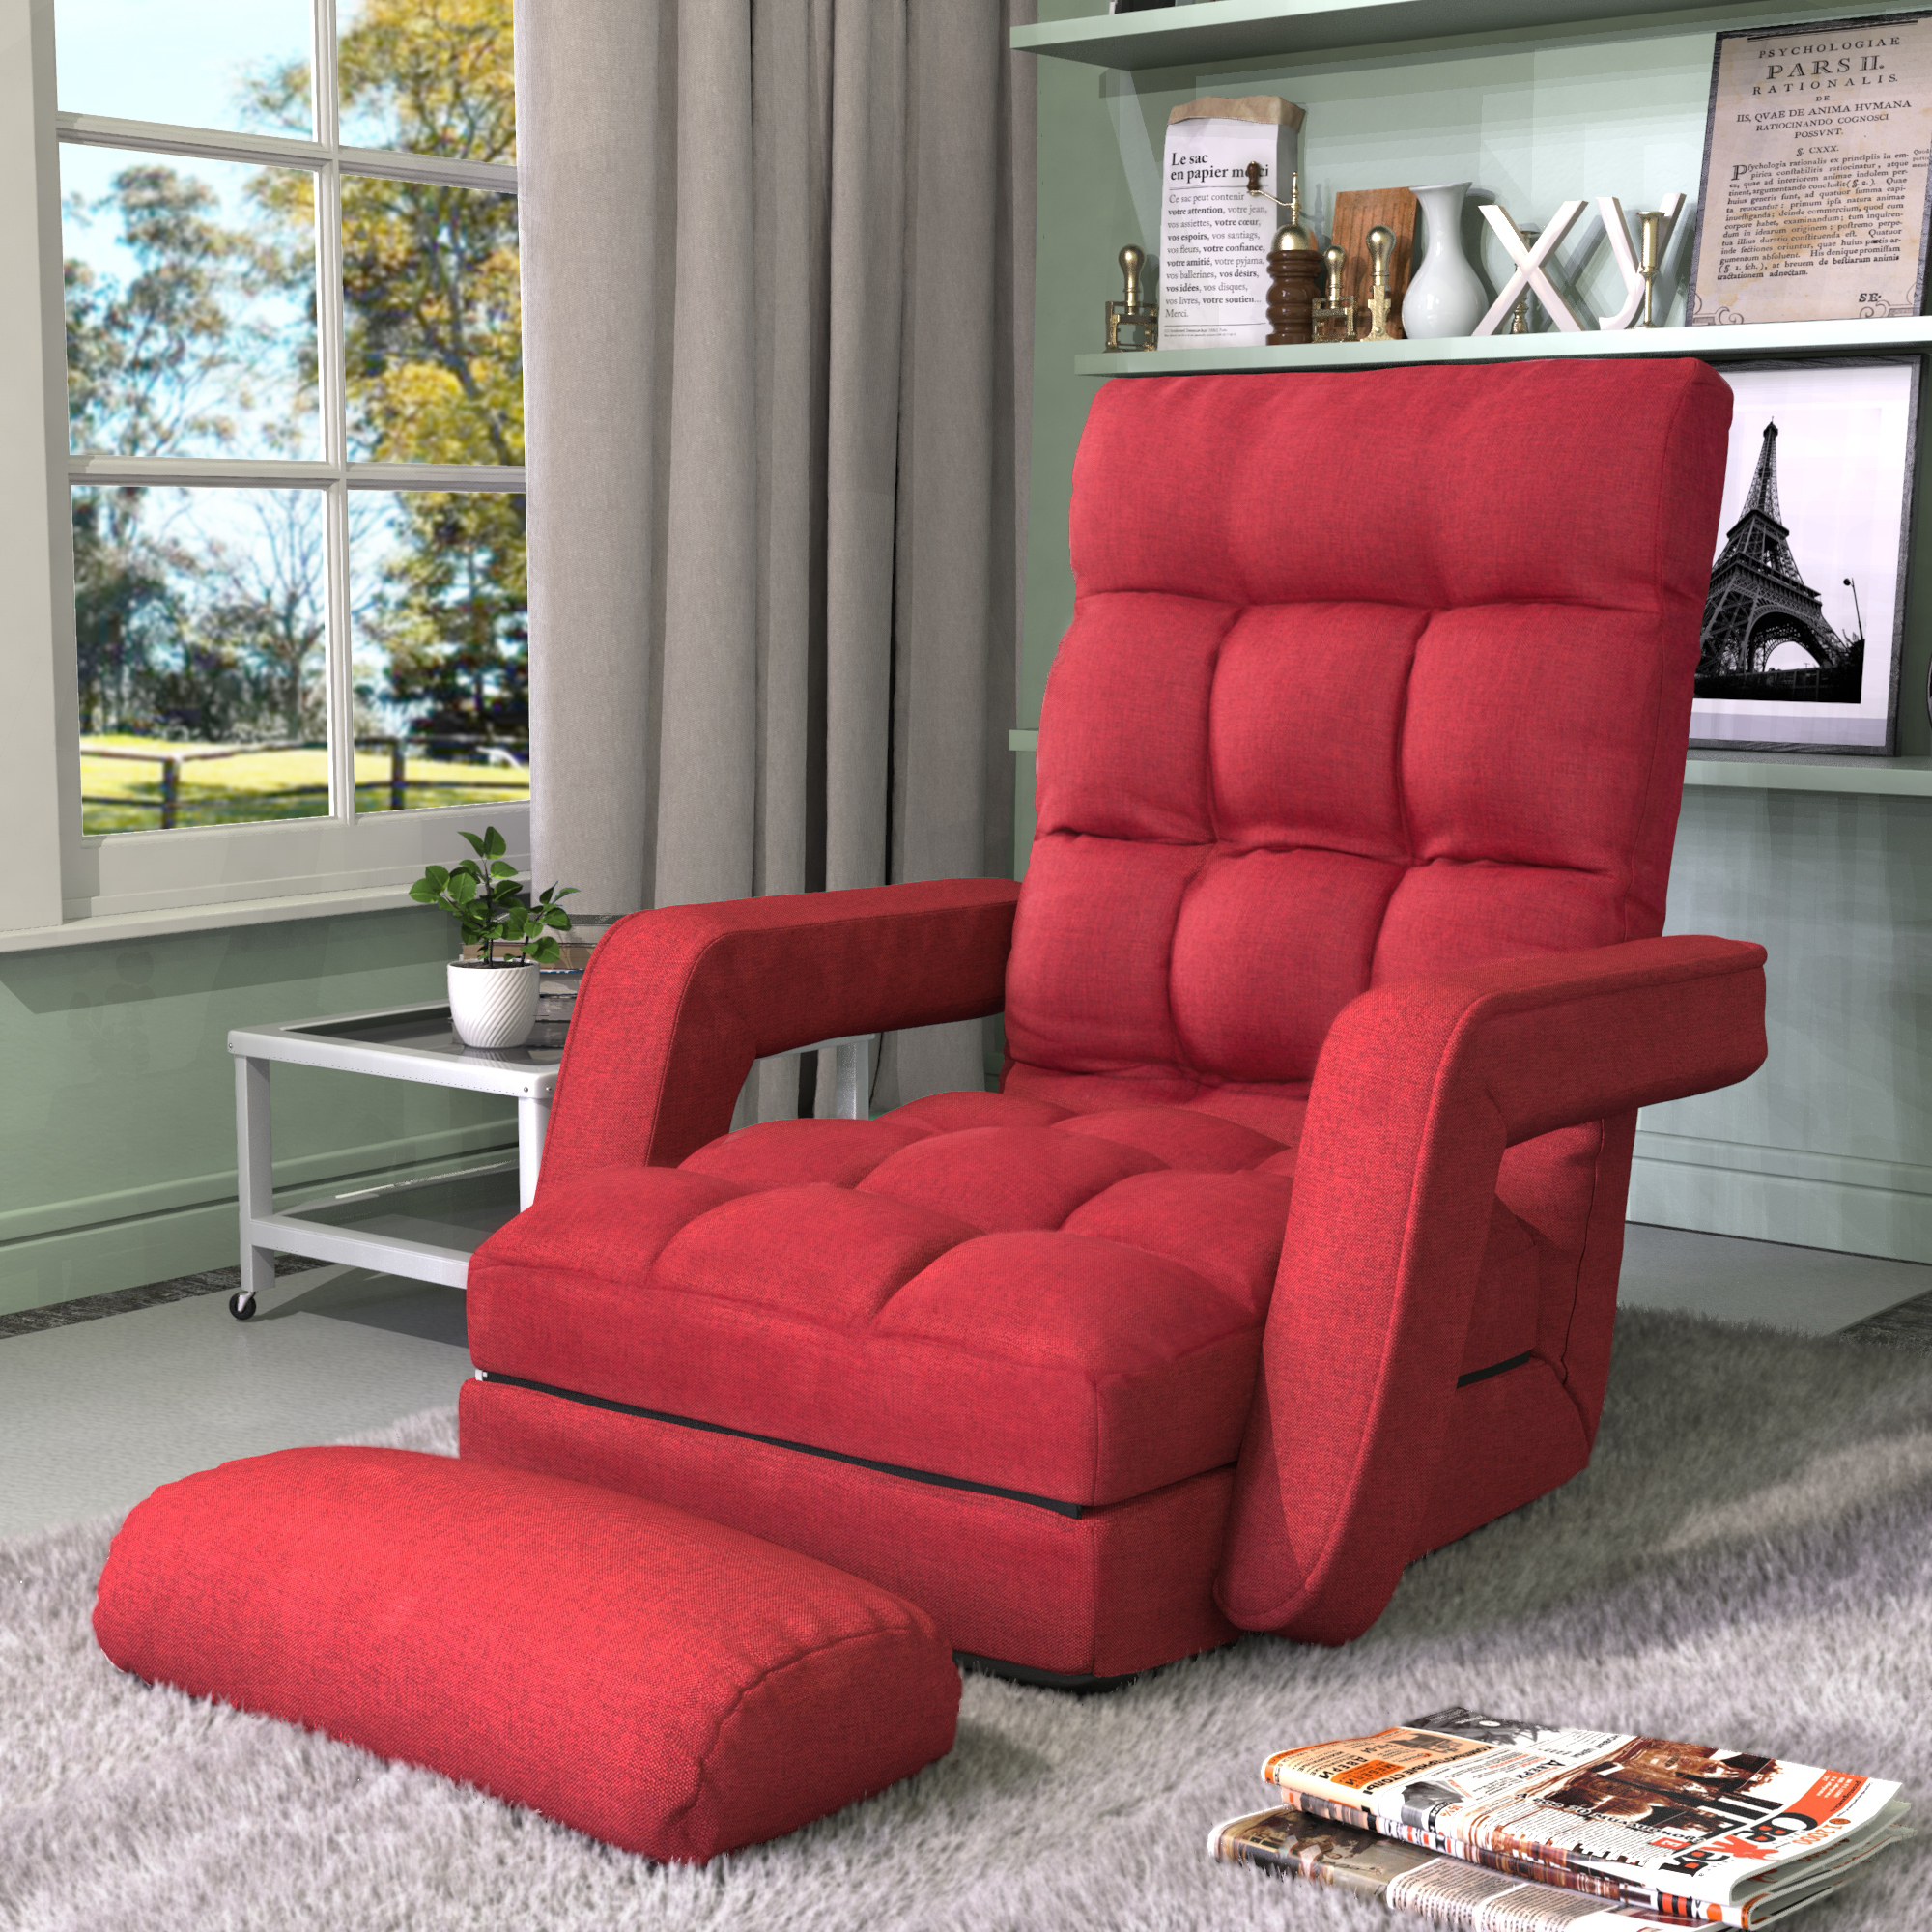 Adjustable 5 Position Floor Chair, Folding Lazy Sofa Floor With Regard To Lazy Sofa Chairs (View 6 of 15)